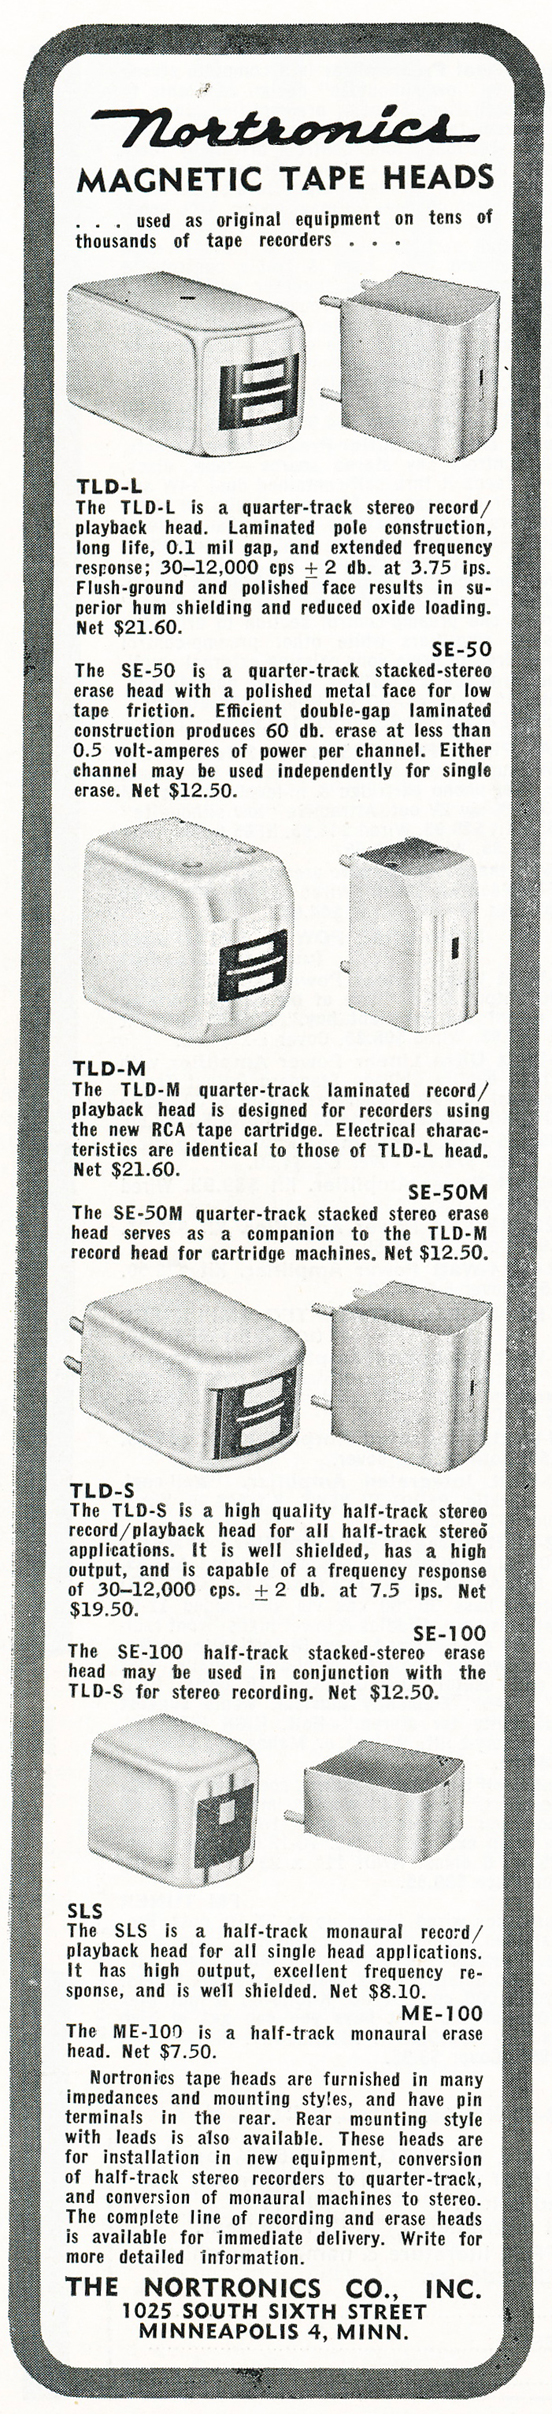 1959 ad for Nortronics reel tape recorder heads in Reel2ReelTexas.com's vintage recording collection